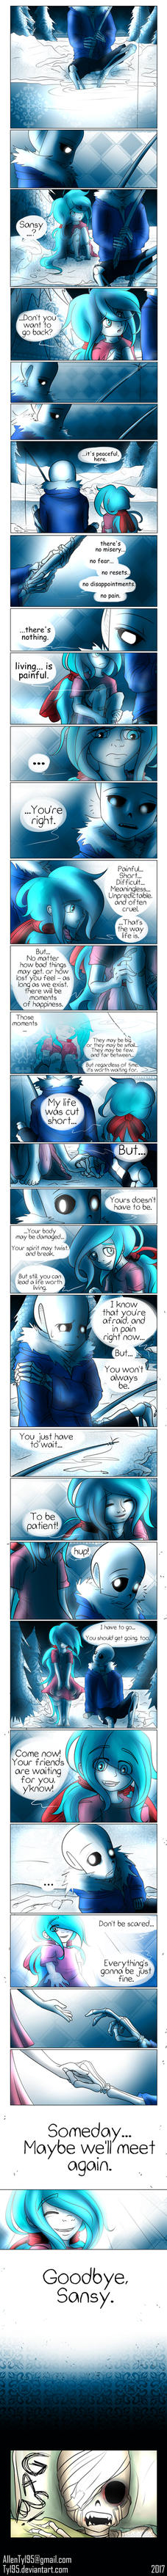 To Live (Undertale Comic) by Tyl95